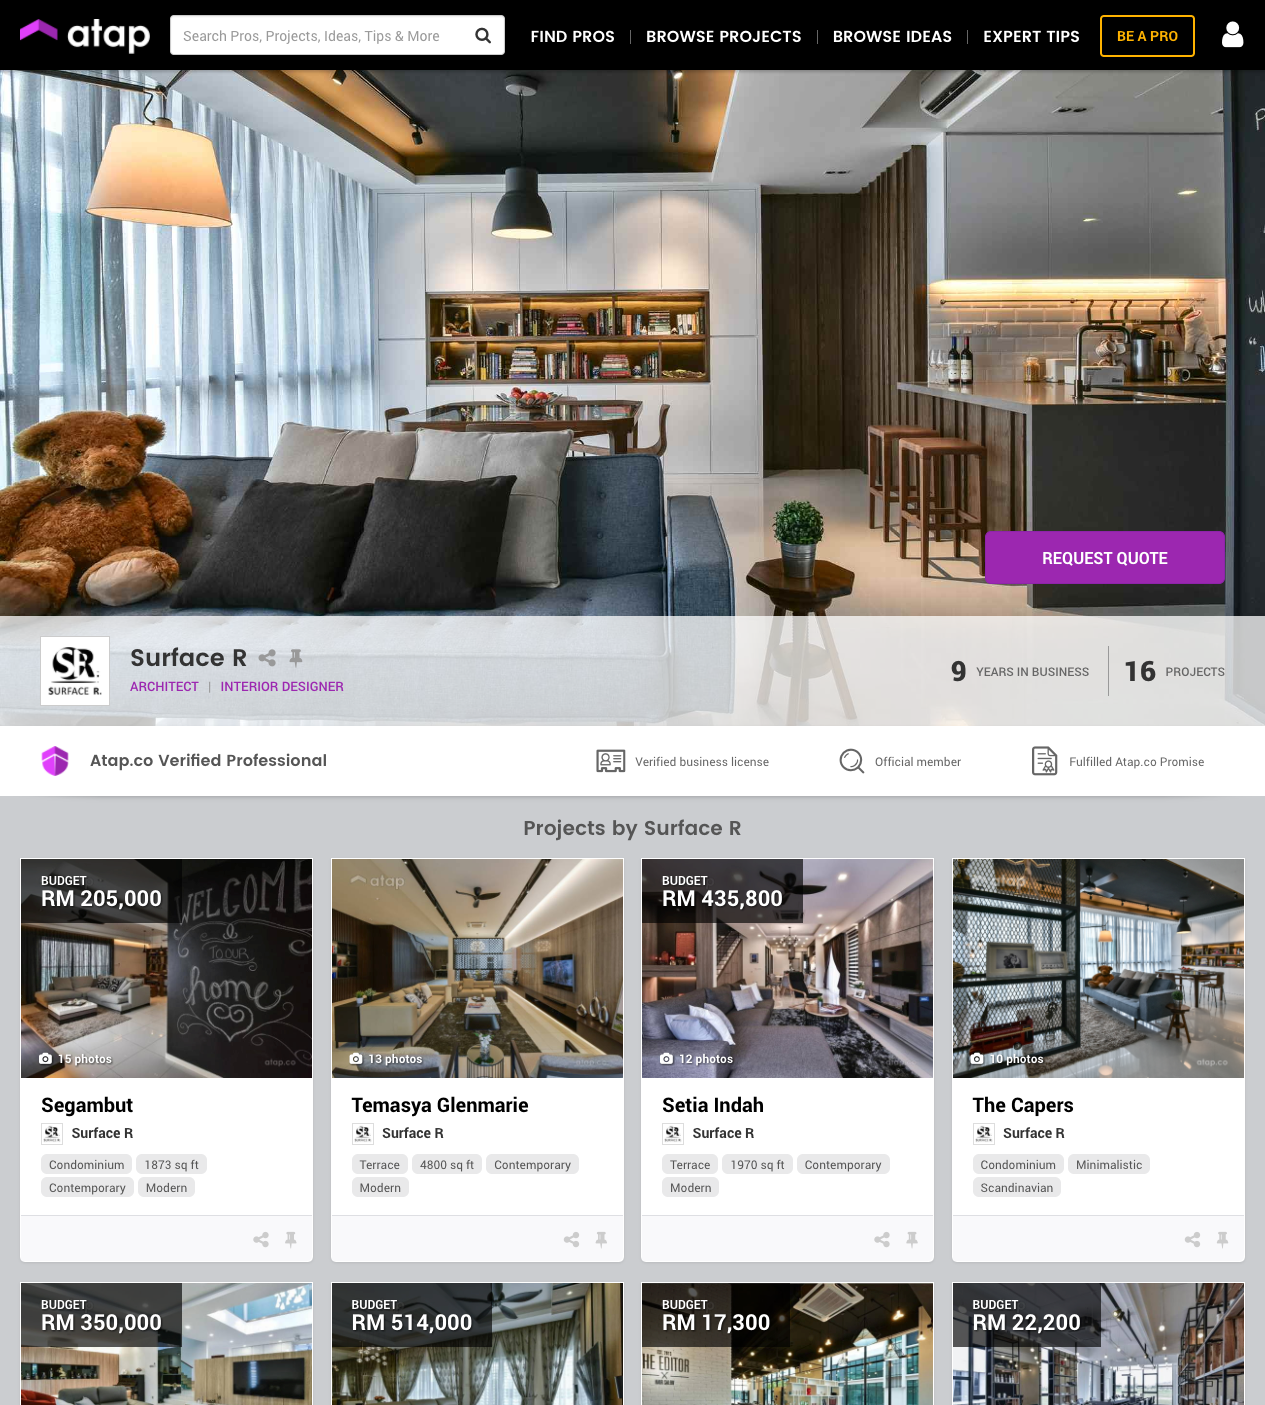 Introducing Atap.co A Trusted Marketplace That Connects Malaysian Property  Owners Like Us With Reliable, Professional Local Interior Designers To Help  ...